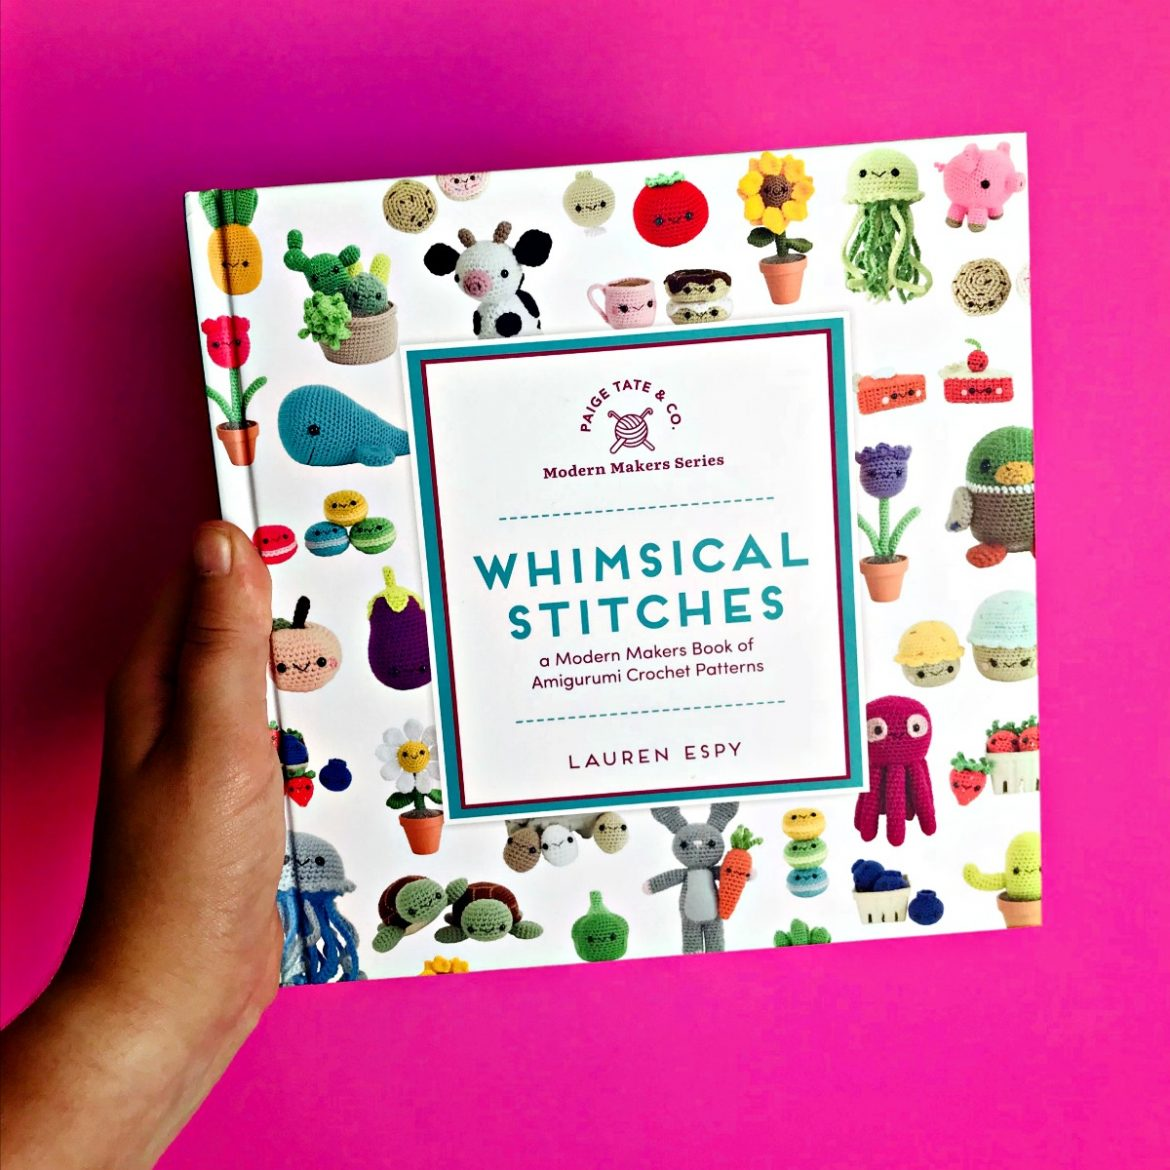 Whimsical Stitches- a Book Review